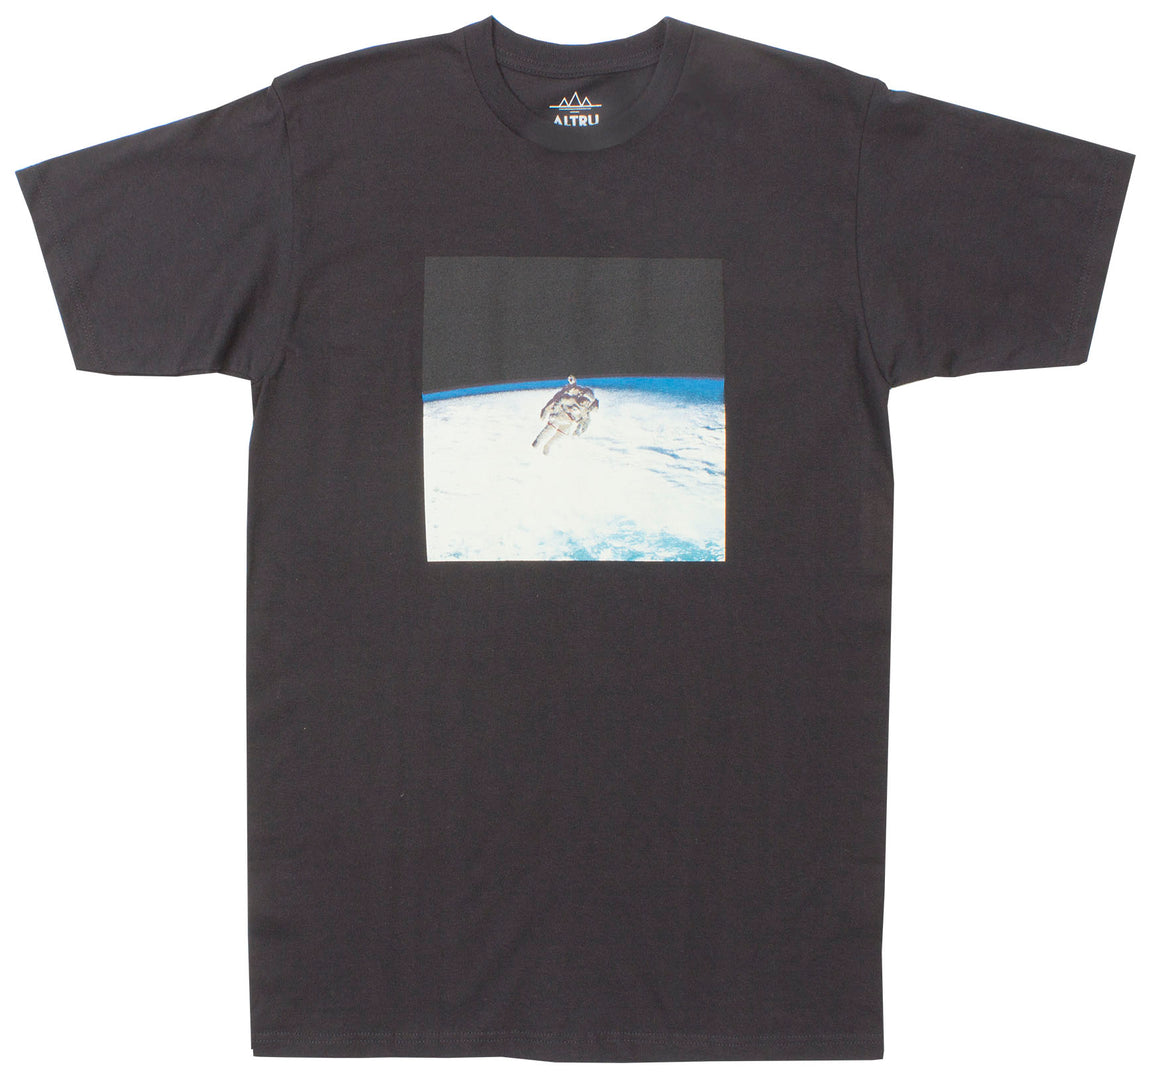 Space Views Black Graphic Tee by Altru Apparel